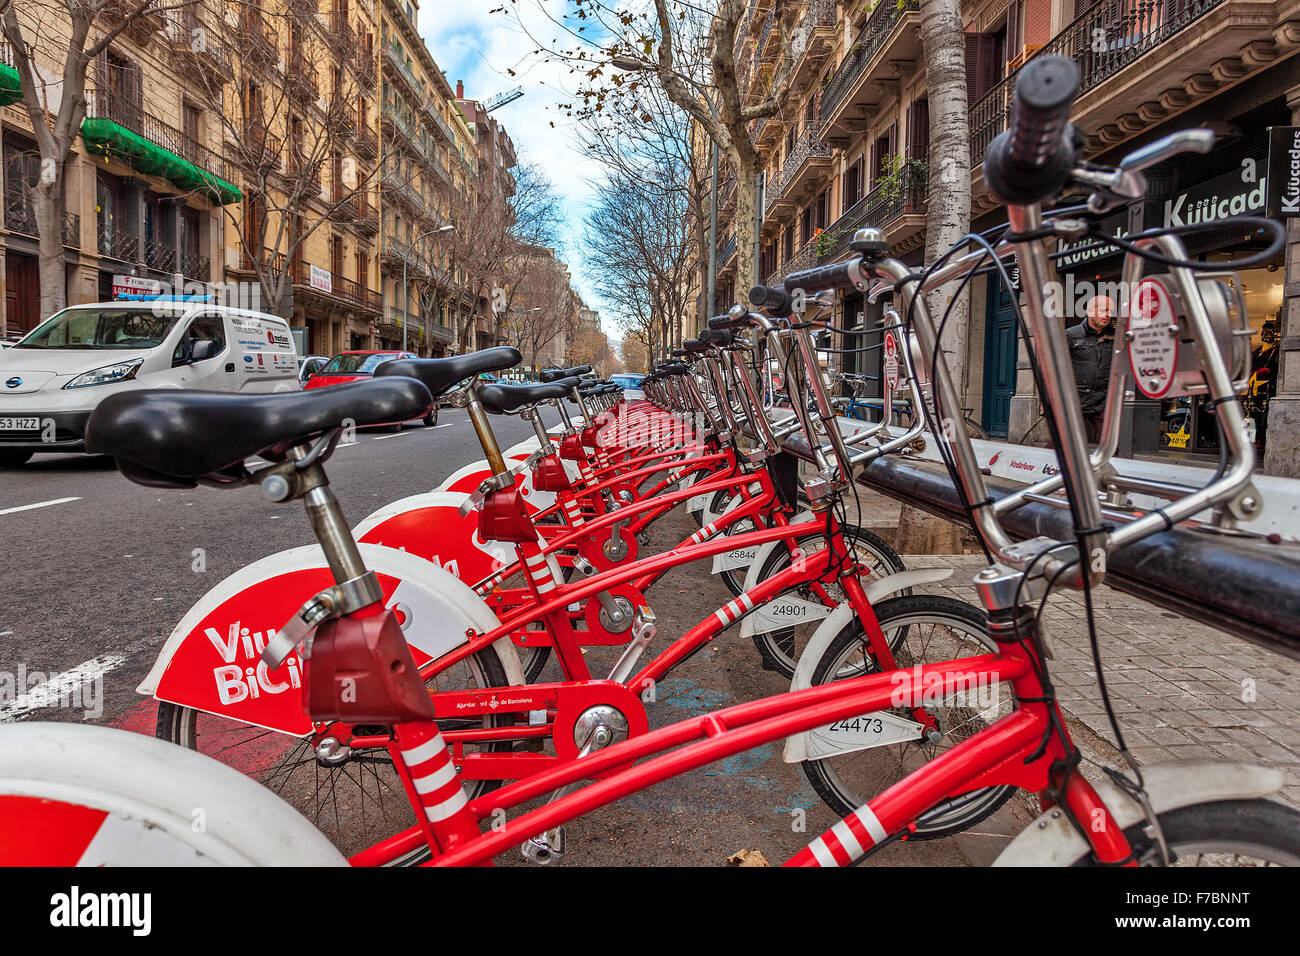 Bicing bicycles sharing station on the street of Barcelona. - Stock Image